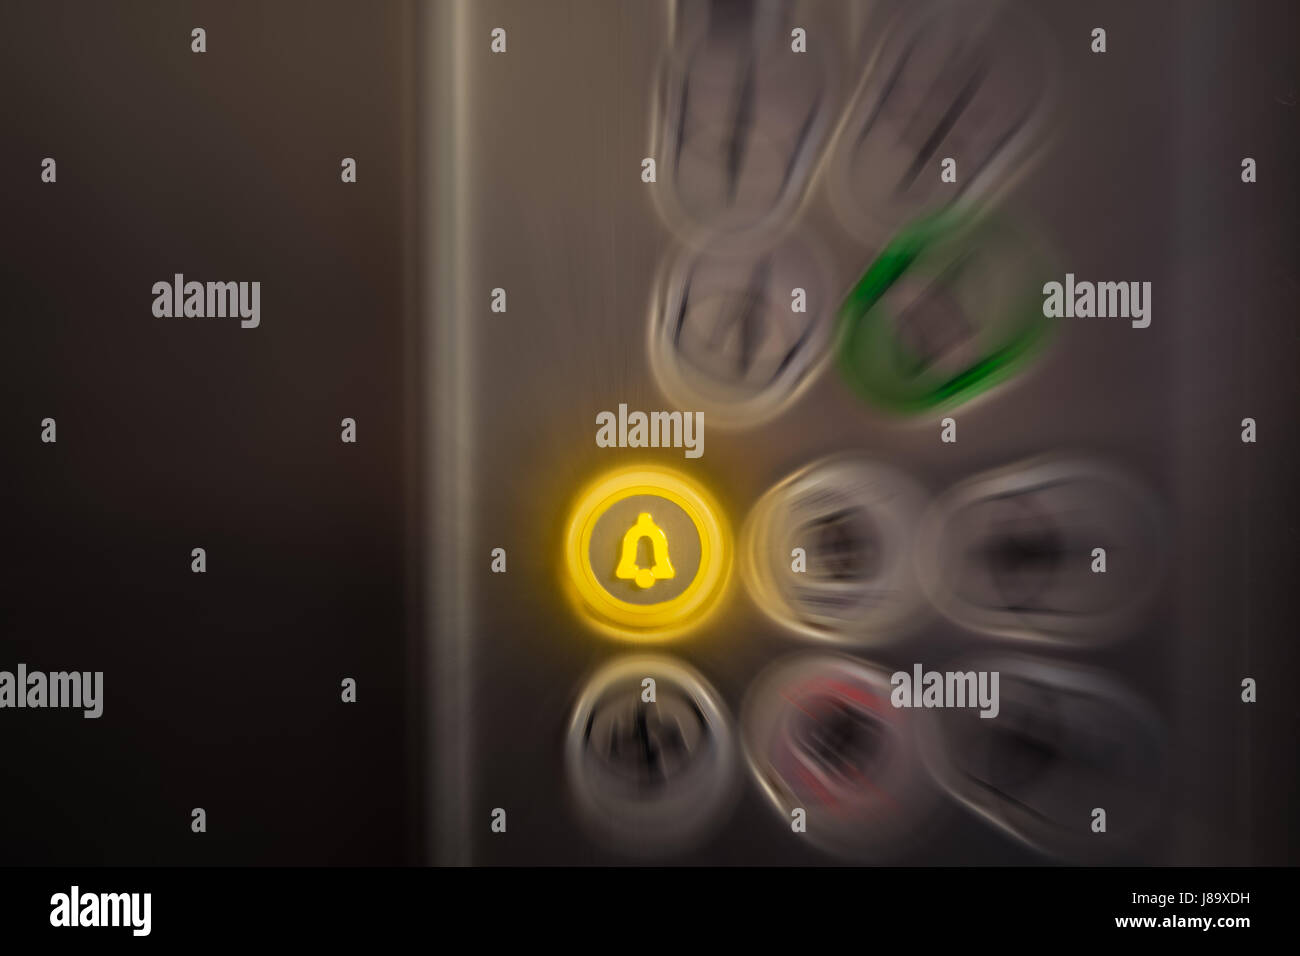 Close up of elevator alarm and panic button on control panel. Button is switched on. Emergency and call for help - Stock Image